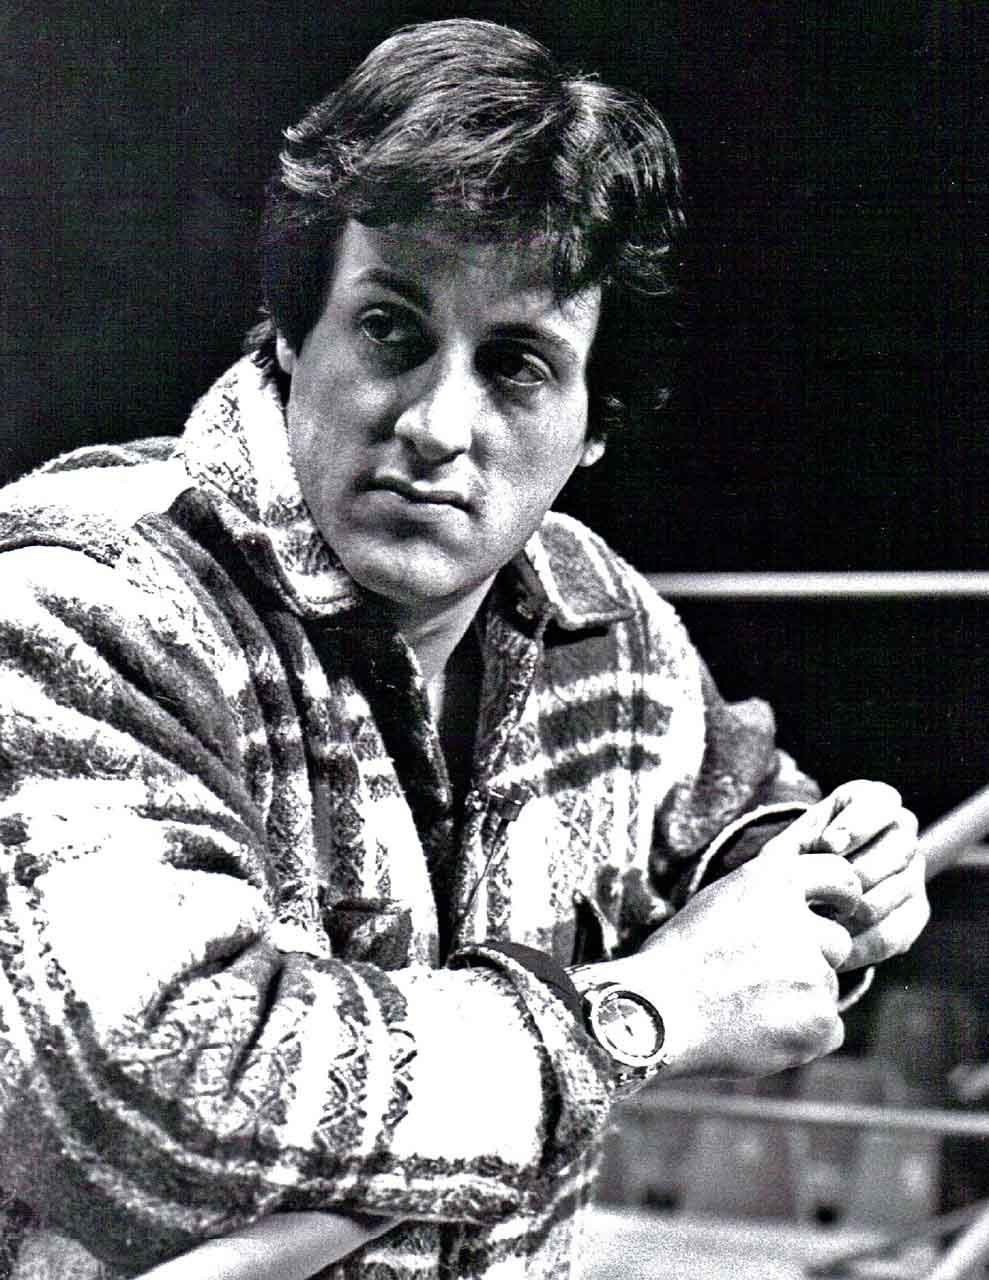 Sylvester Stallone - Rocky Balboa Motivation - Motivational Speech